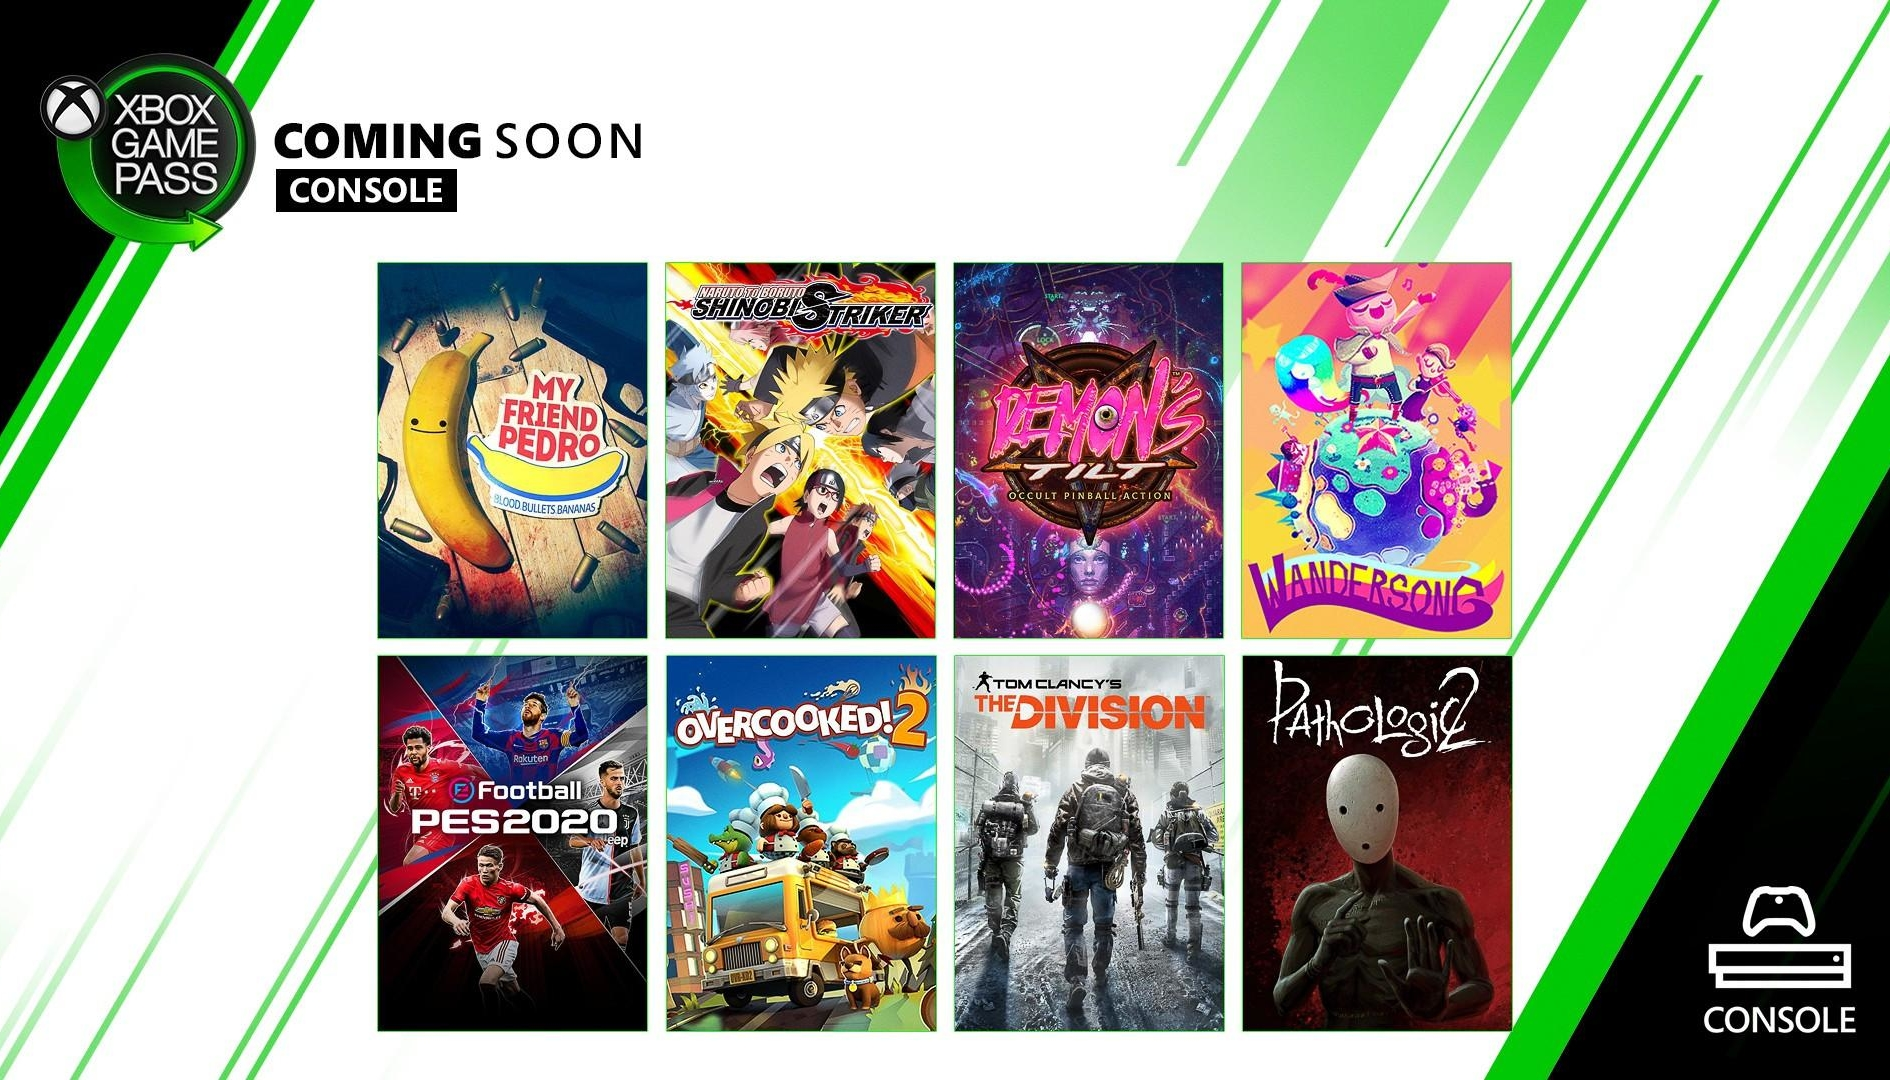 Xbox Game Pass: My Friend Pedro, PES 2020 e The Division tra i giochi di Dicembre